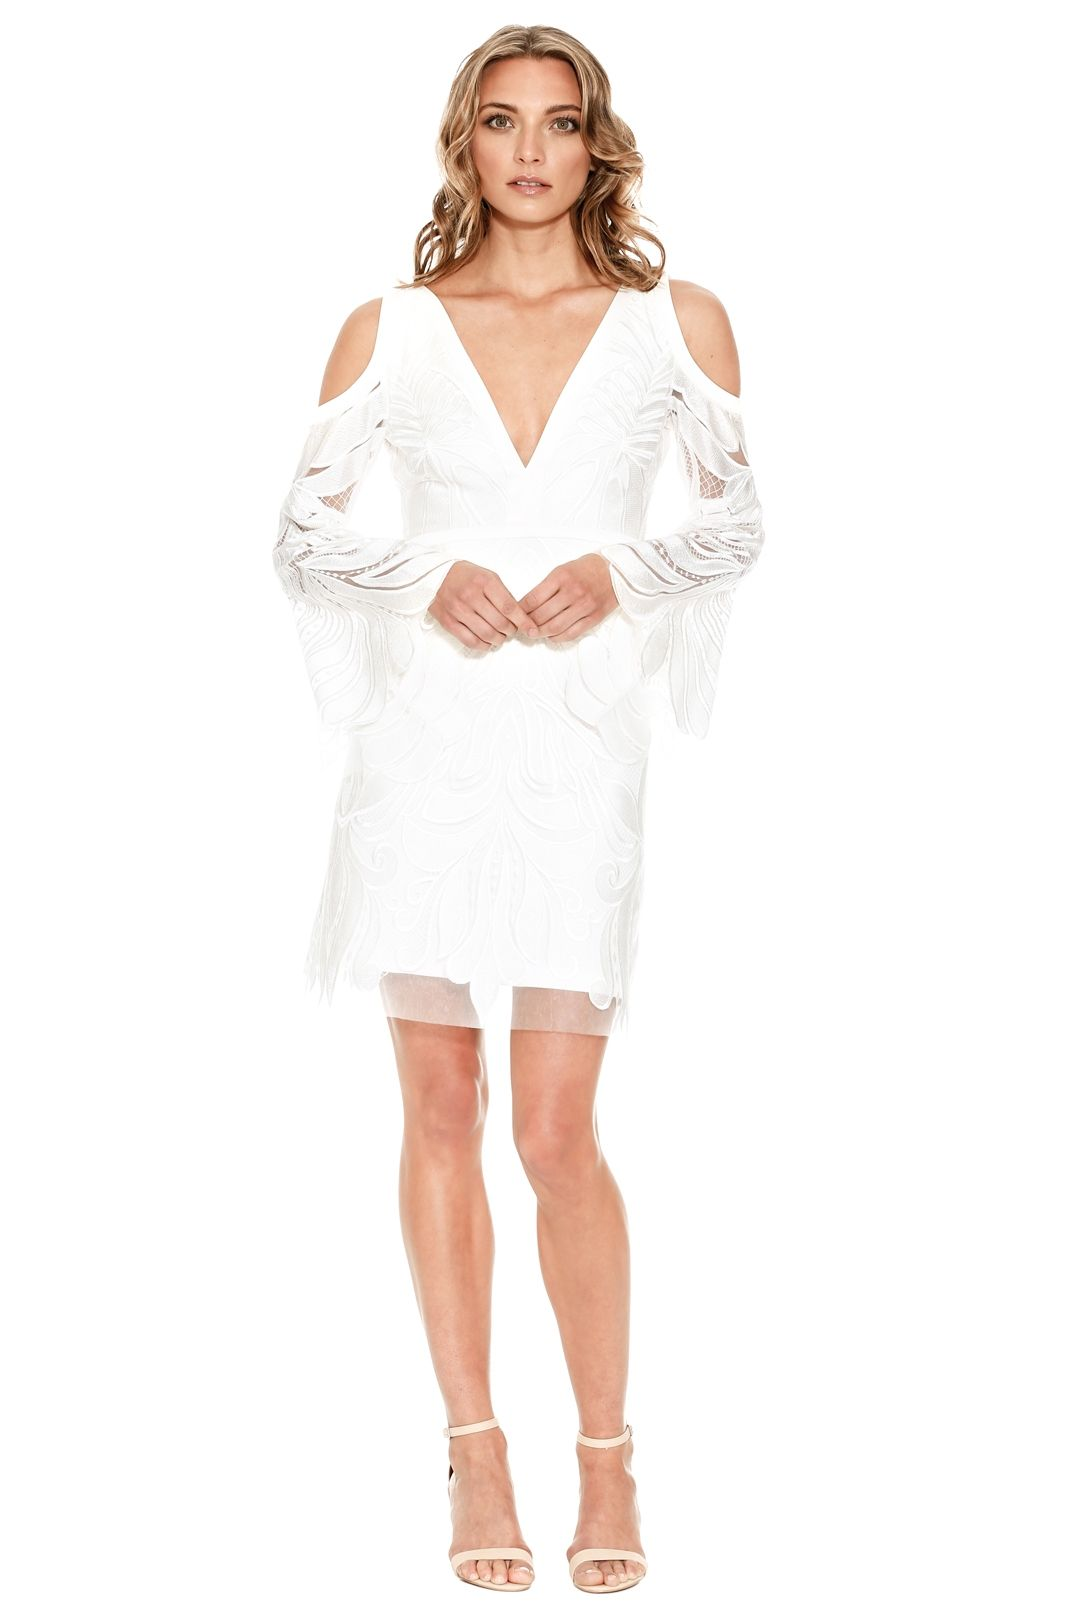 Thurley - Bach Embroidered Dress - White - Front